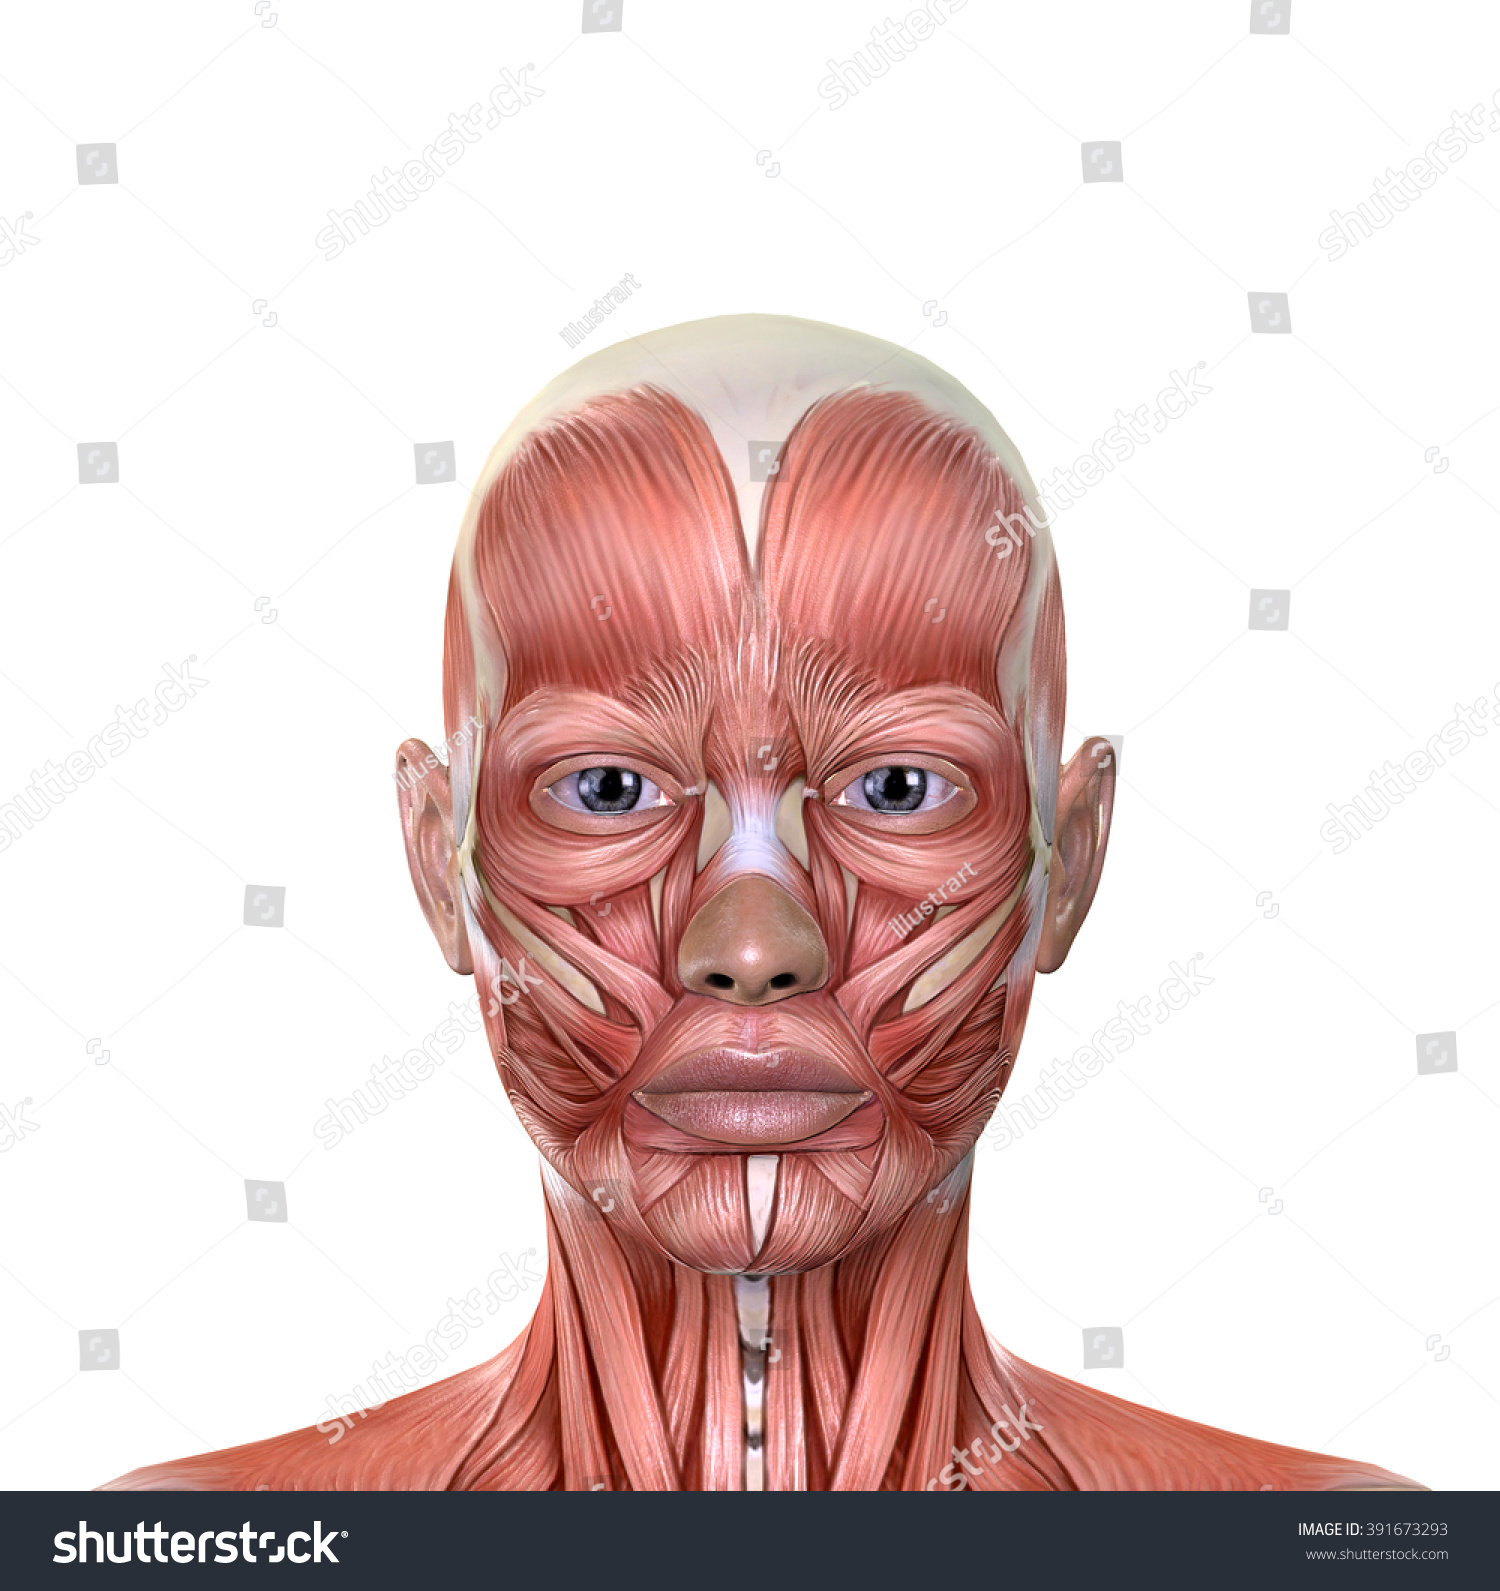 chin muscles diagram airport er female face anatomy isolated on stock illustration